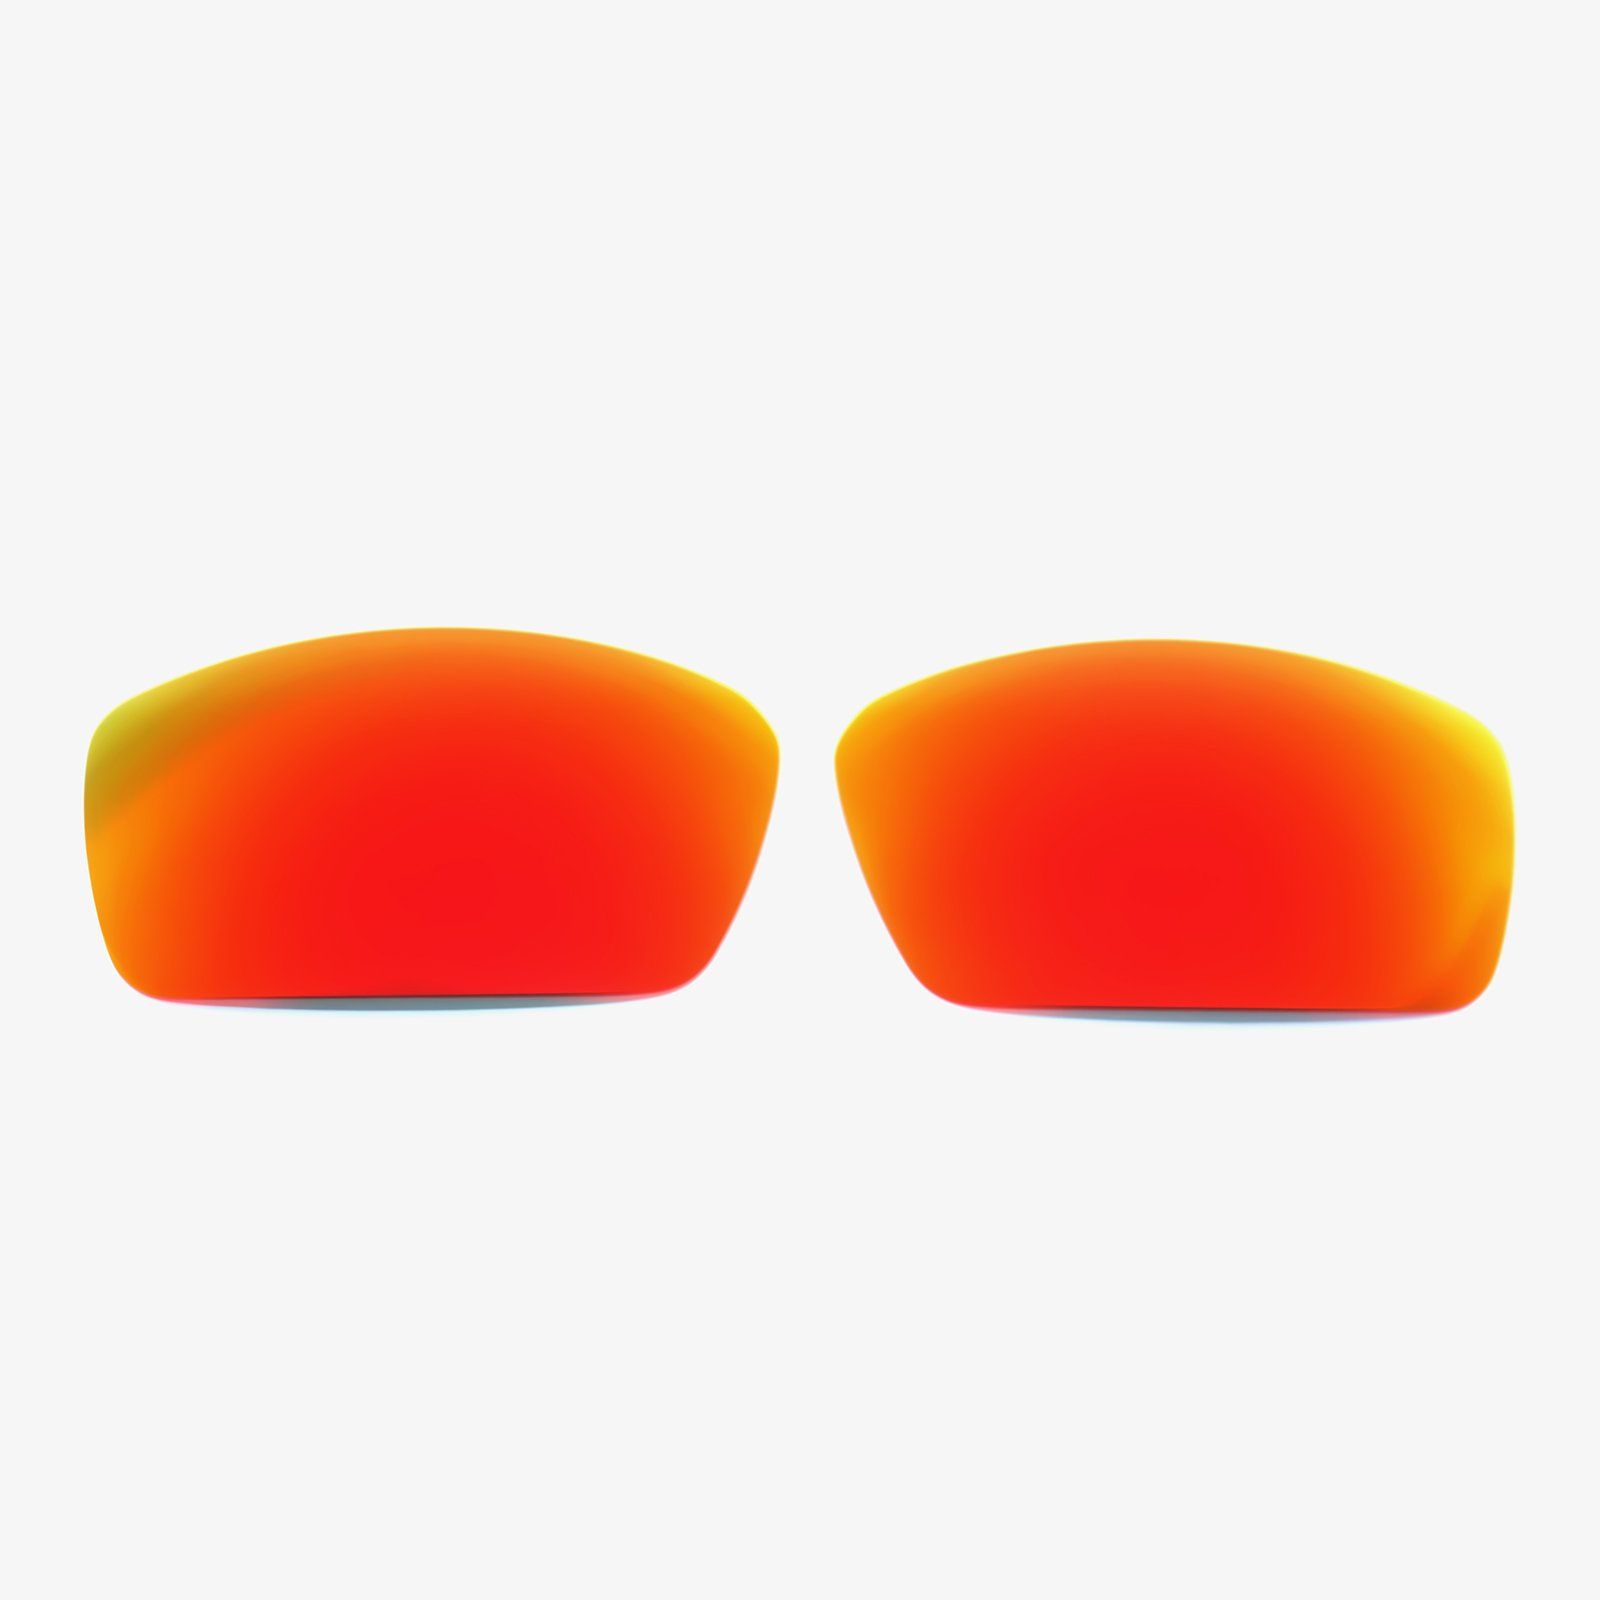 Polarized Replacement Lenses For Spy Optic Dirk Sunglasses Frame Fire Red by oGeee